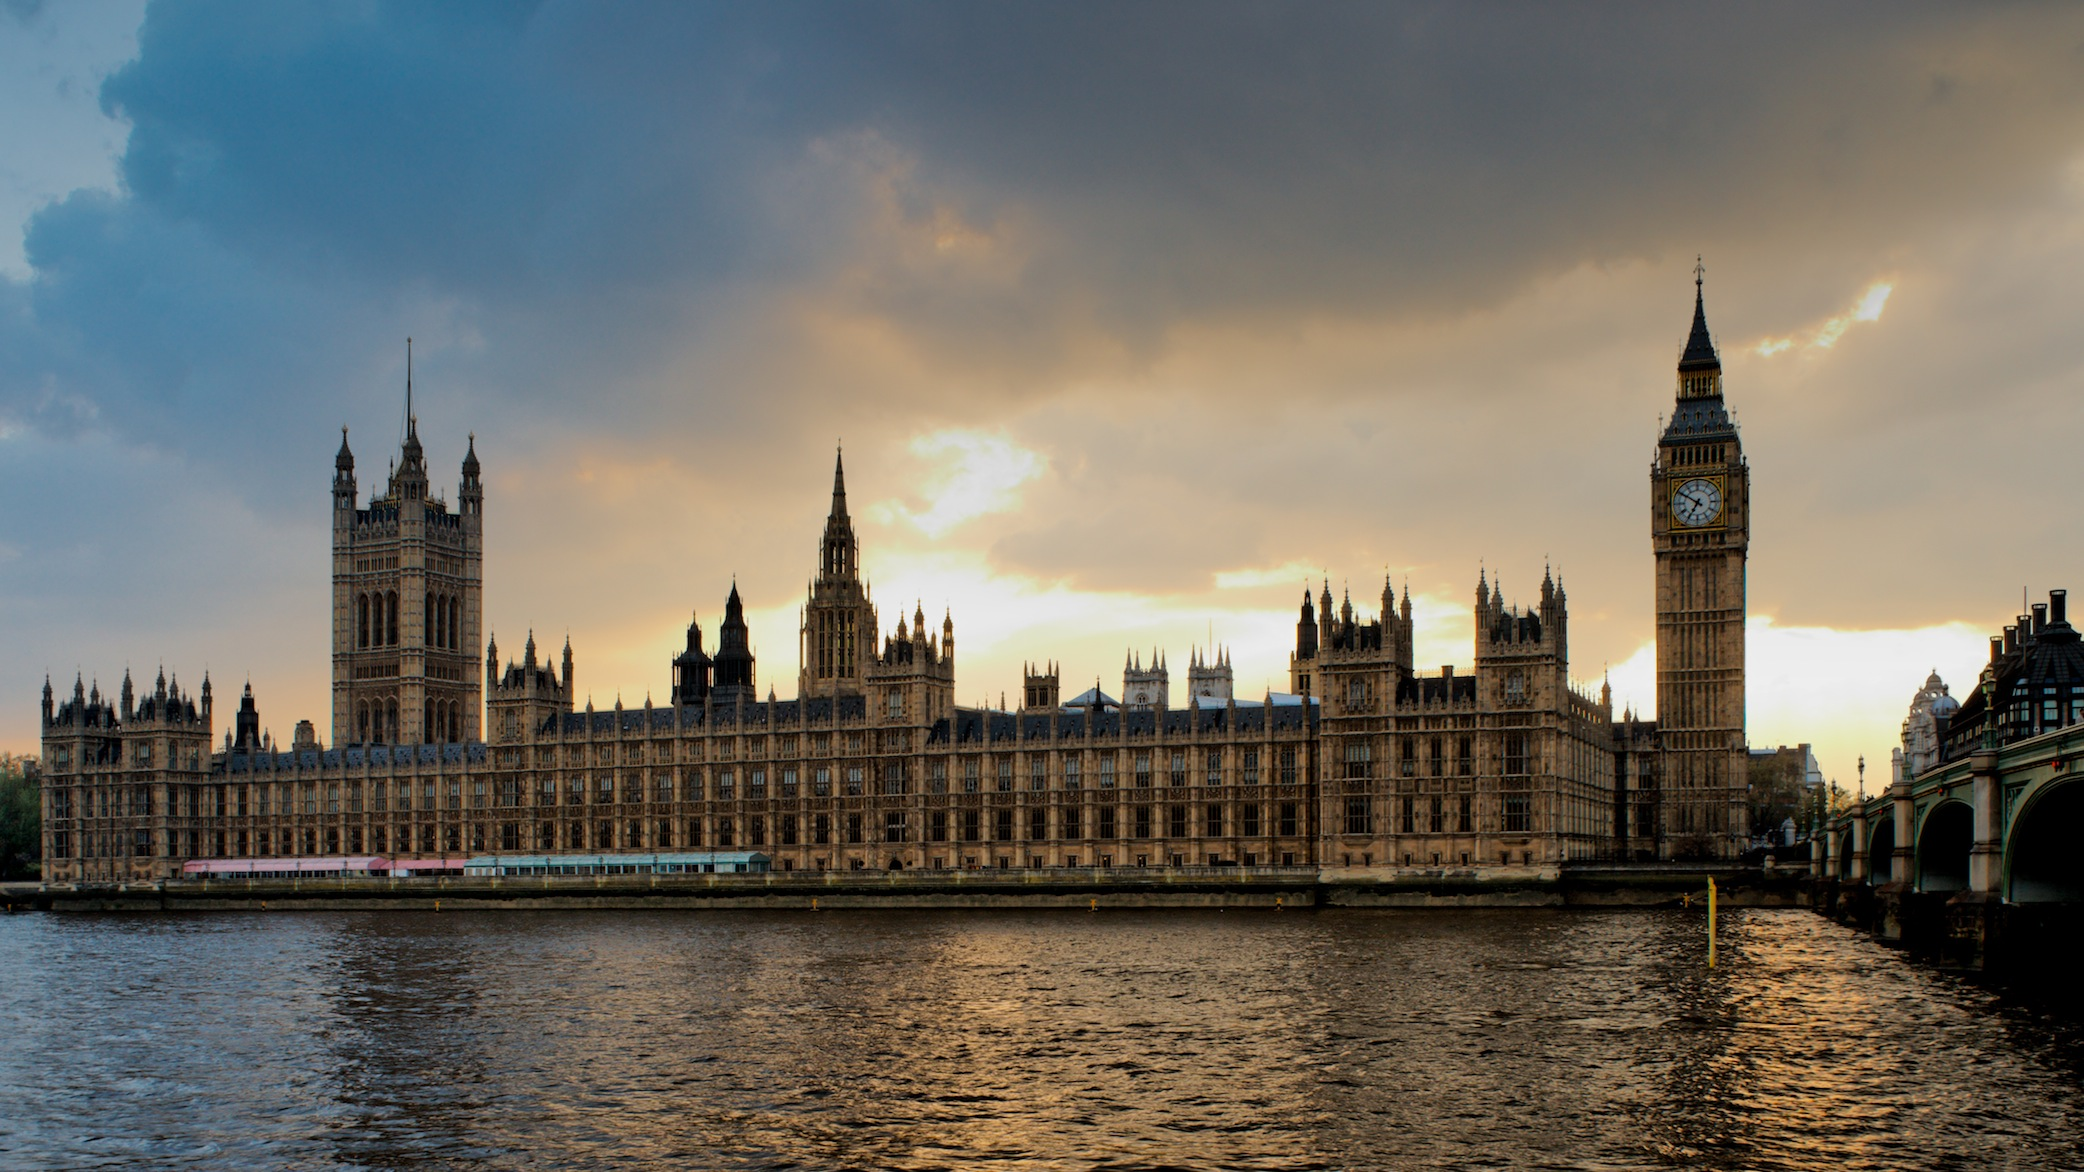 Westminster-Abbey-Sunset-deposit-photos-low-res